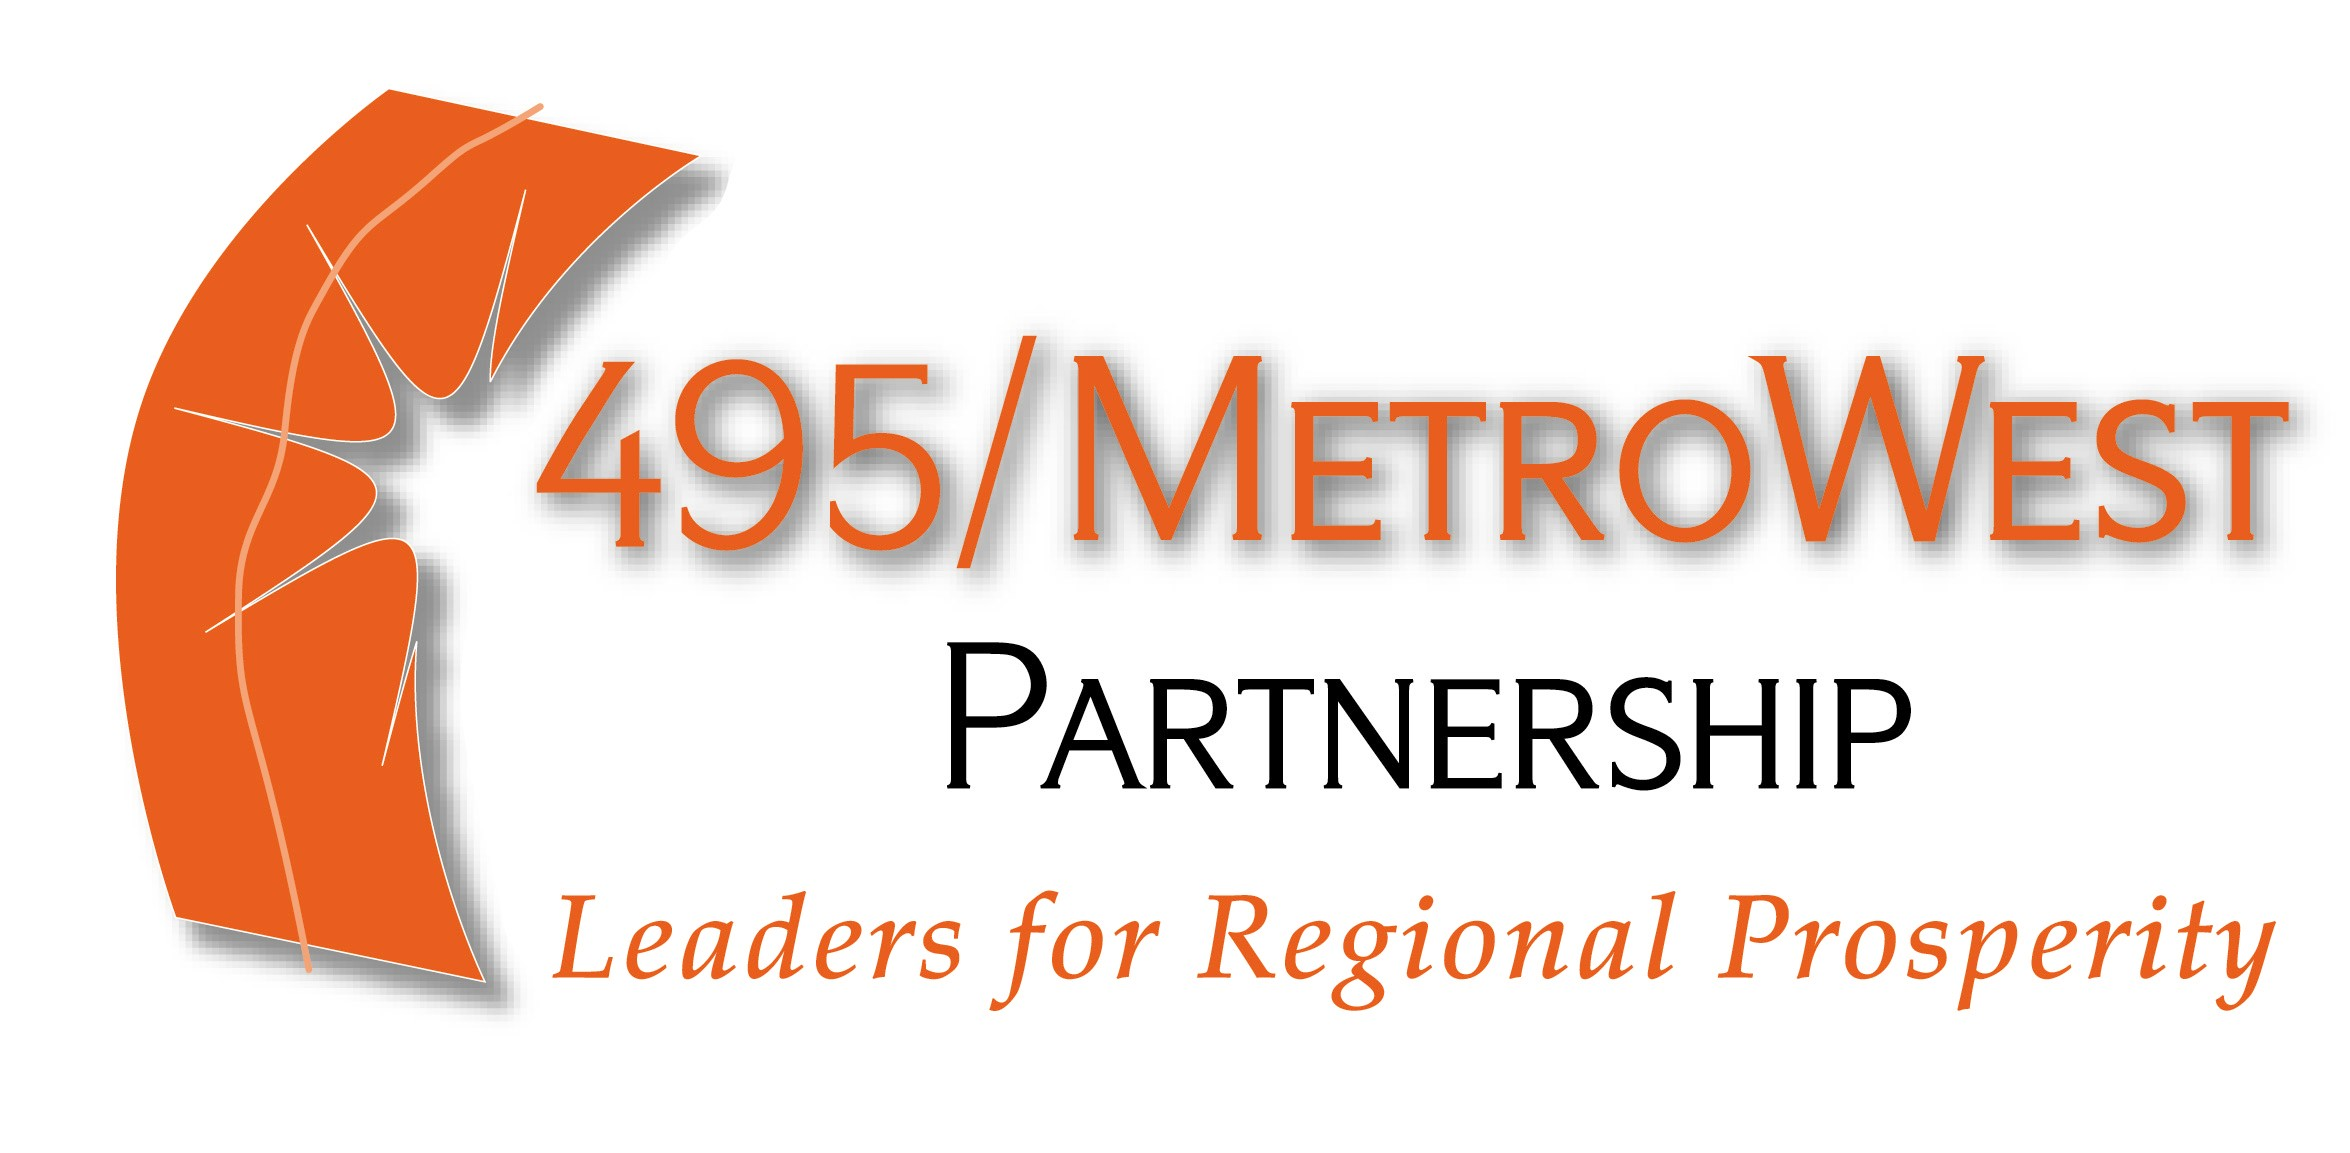 495_metrowest_partnership_new_logo_w_tag.jpg